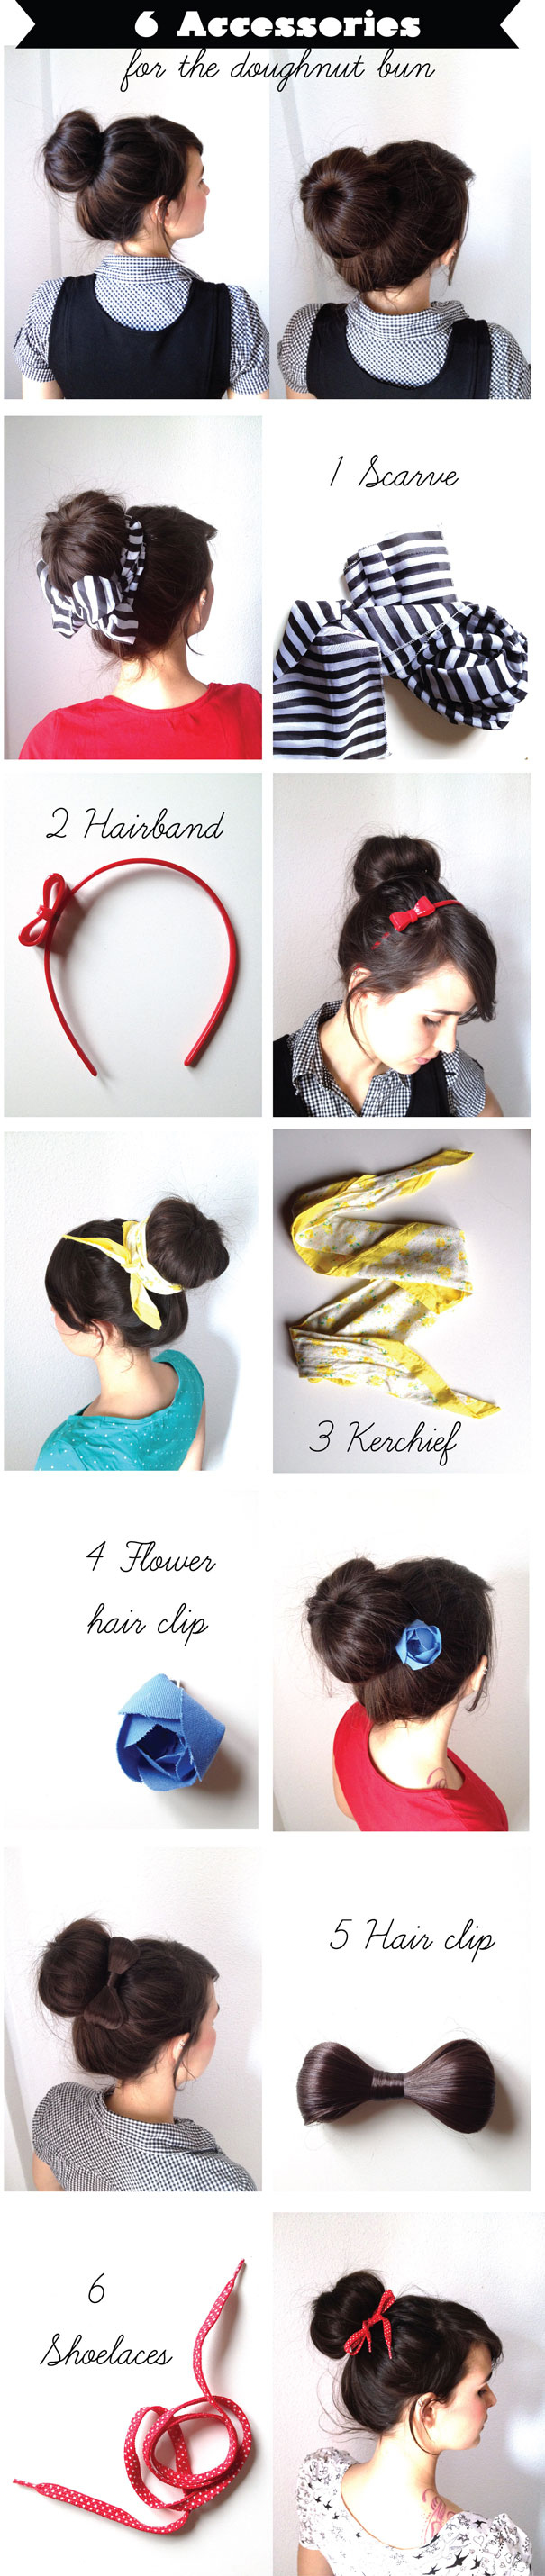 Accessory Ideas for Your Bun